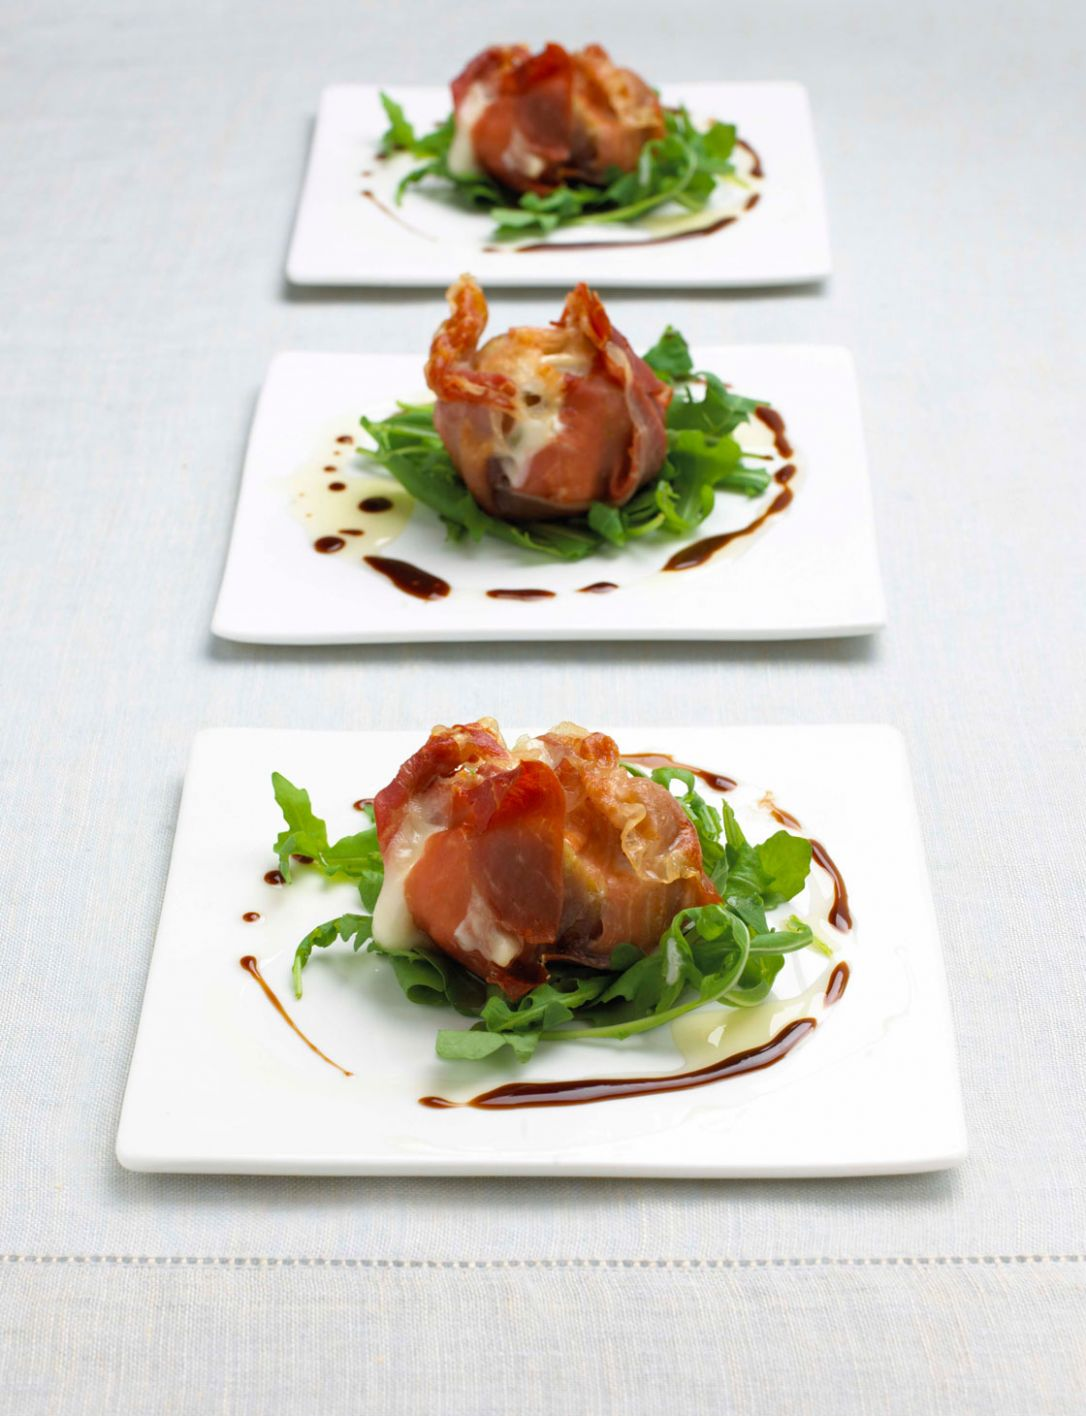 Roasted figs with Parma ham and goat's cheese